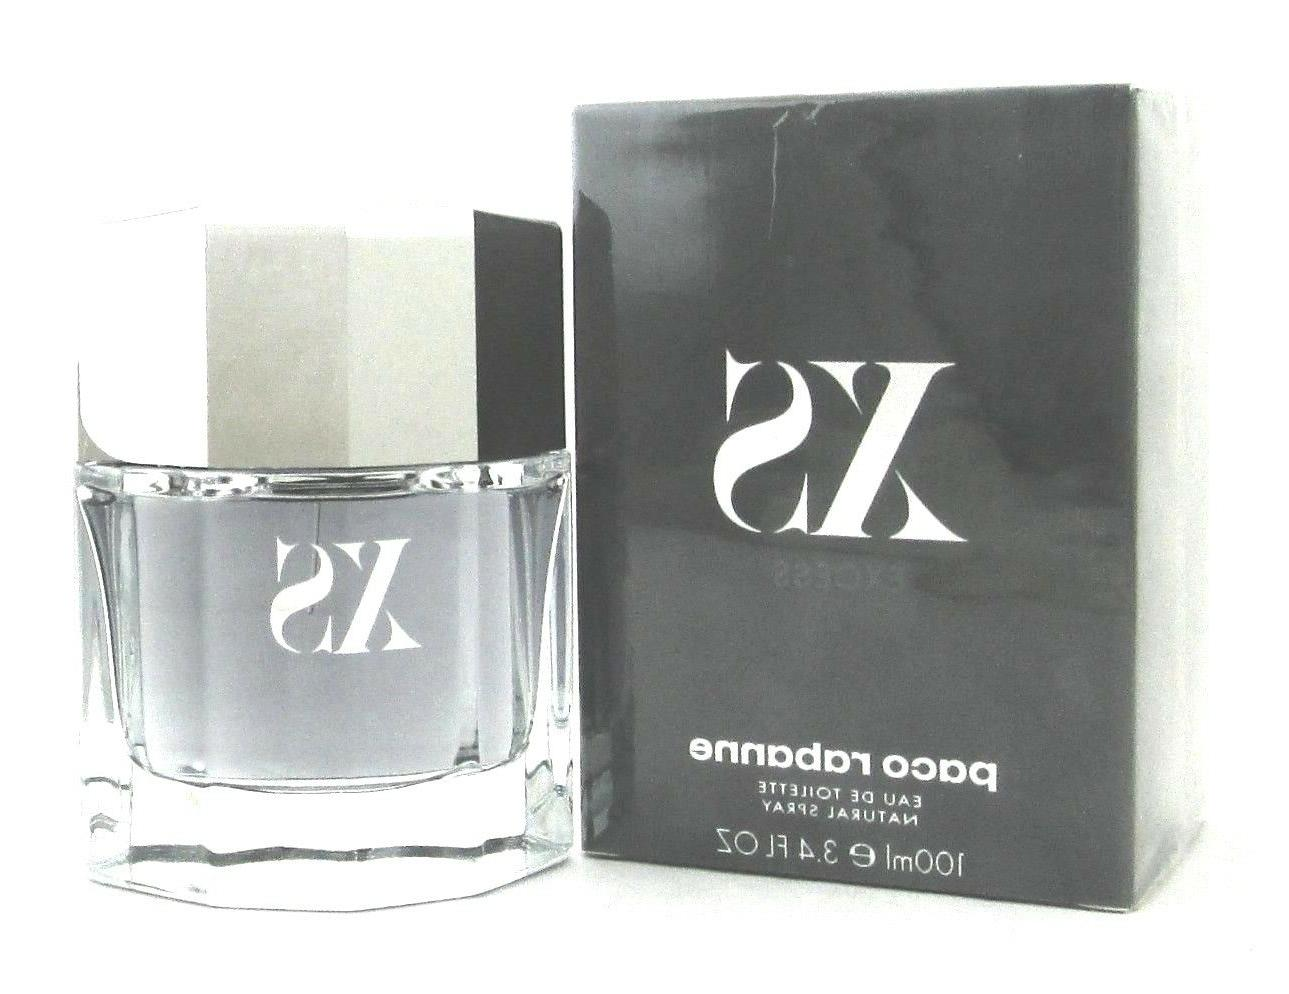 XS Excess Cologne  by Paco Rabanne 3.4 oz. EDT Spray for Men